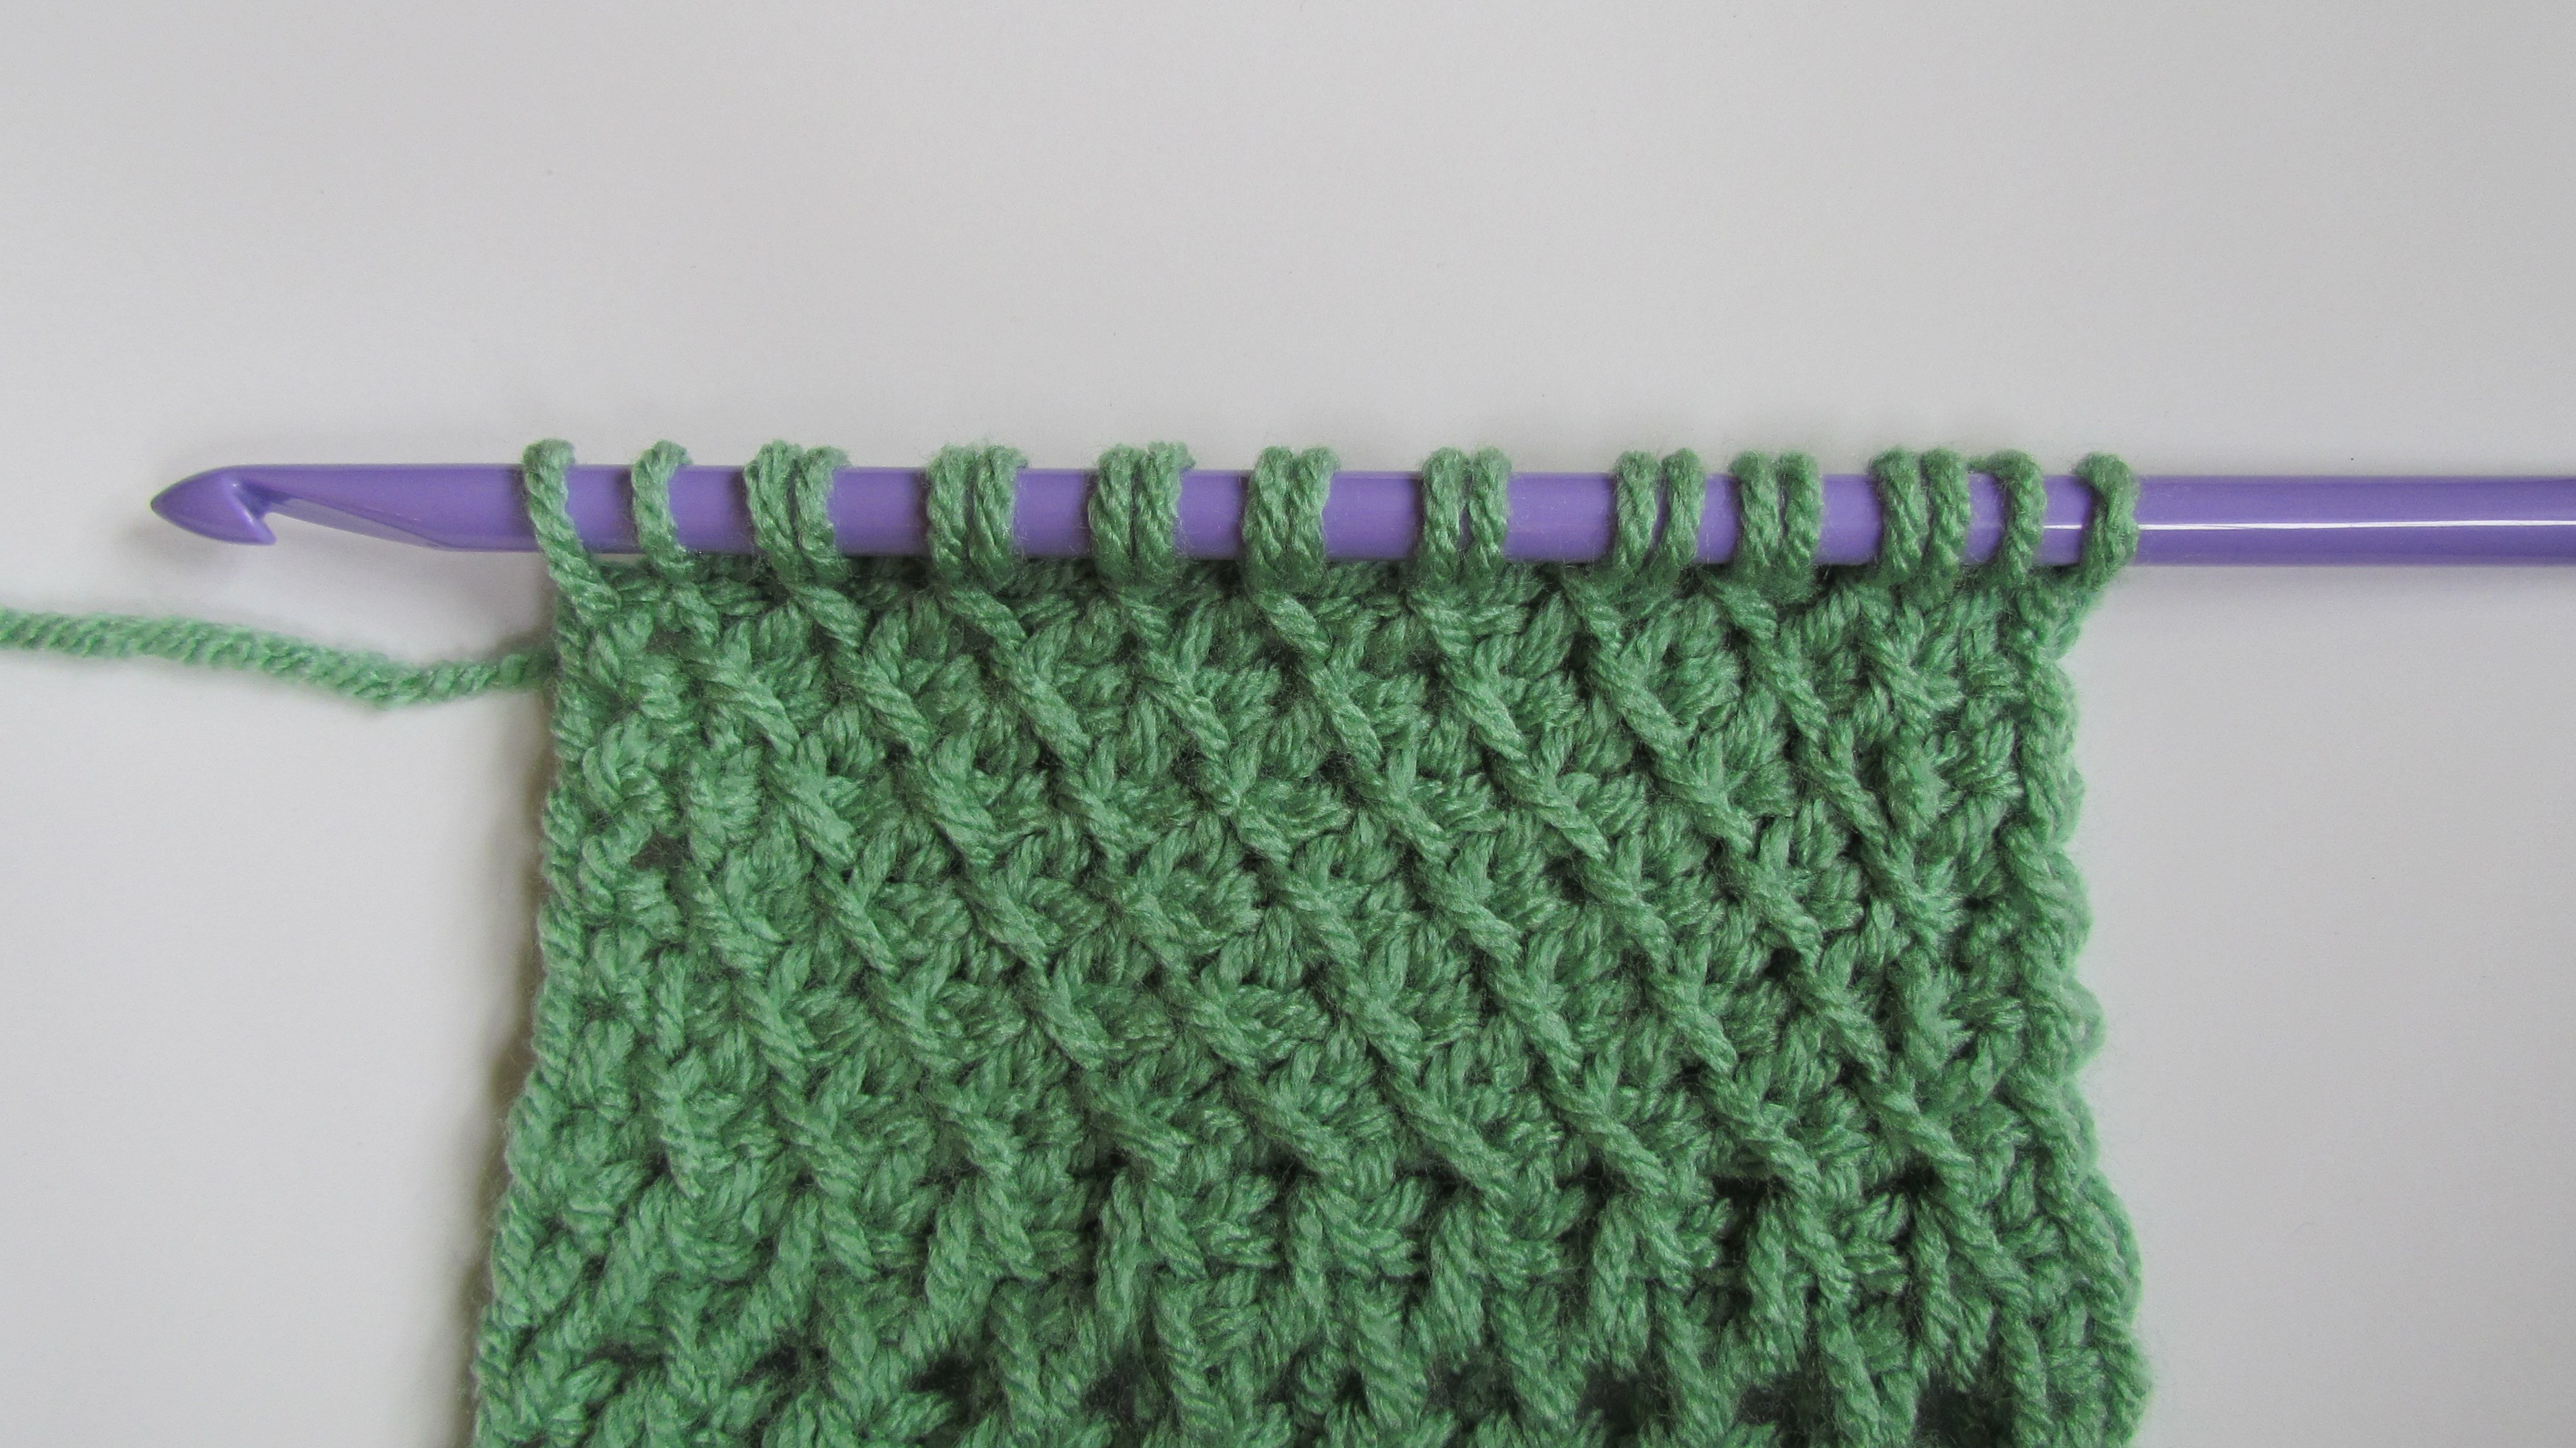 Tunisian Crochet Stitches Awesome Tunisian Sampler Scarf Cal Part 8 Ambassador Crochet Of Wonderful 41 Pics Tunisian Crochet Stitches